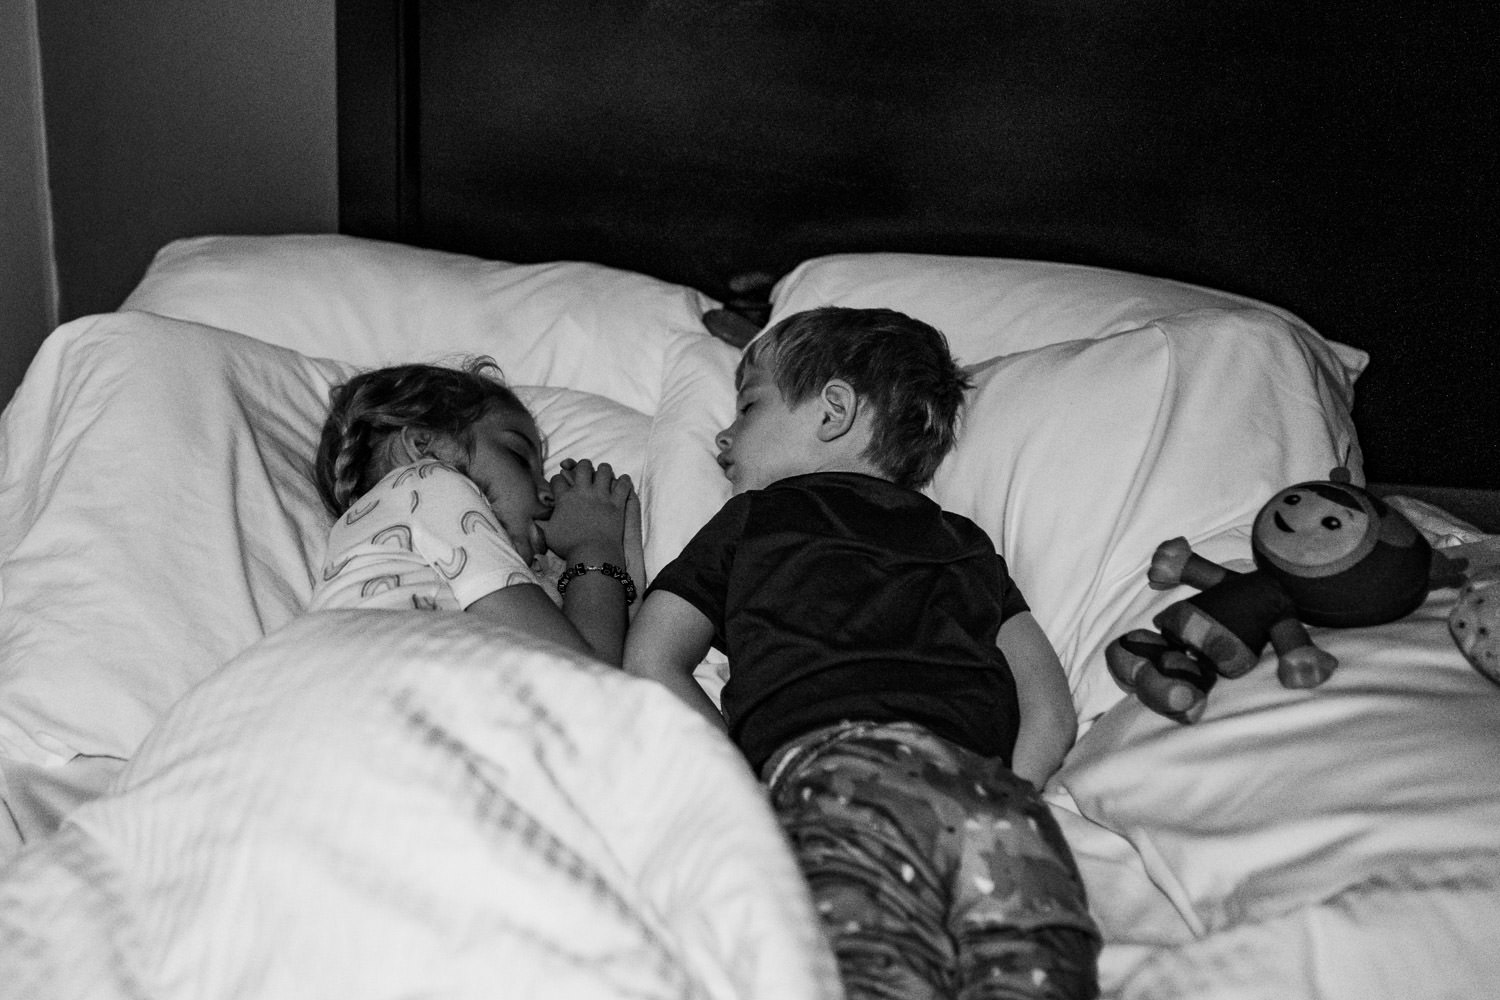 Two children asleep in a hotel bed.